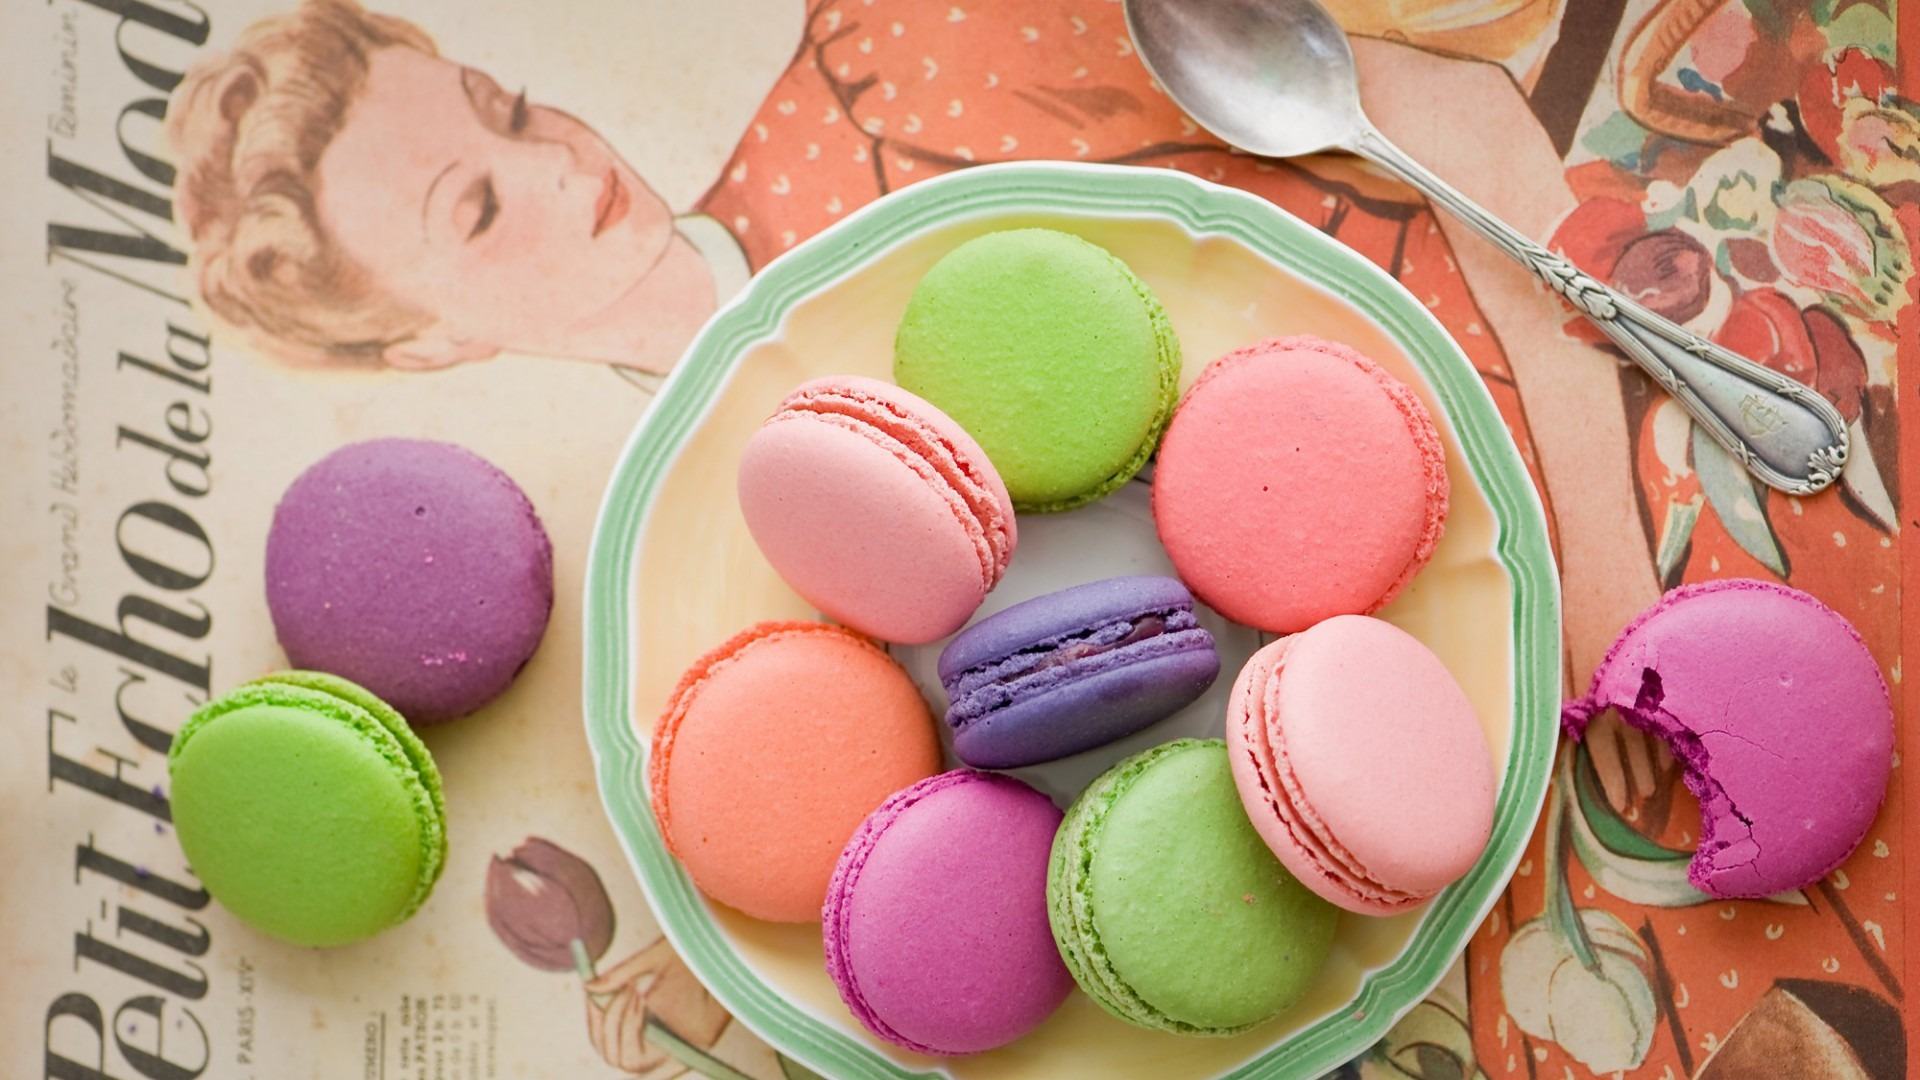 Colorful Cake Macaron Wallpaper Wide Wallpaper